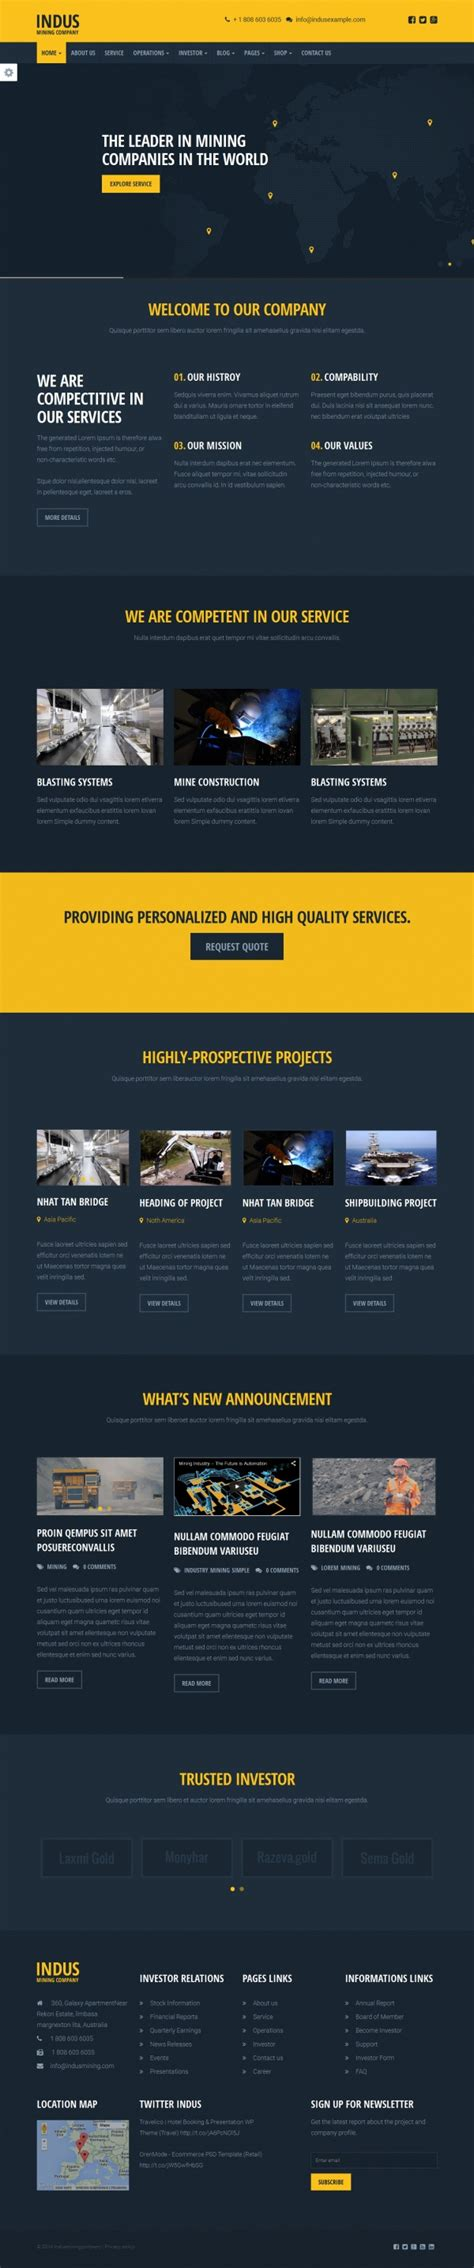 themeforest industrial themeforest indus industrial html responsive templates rip